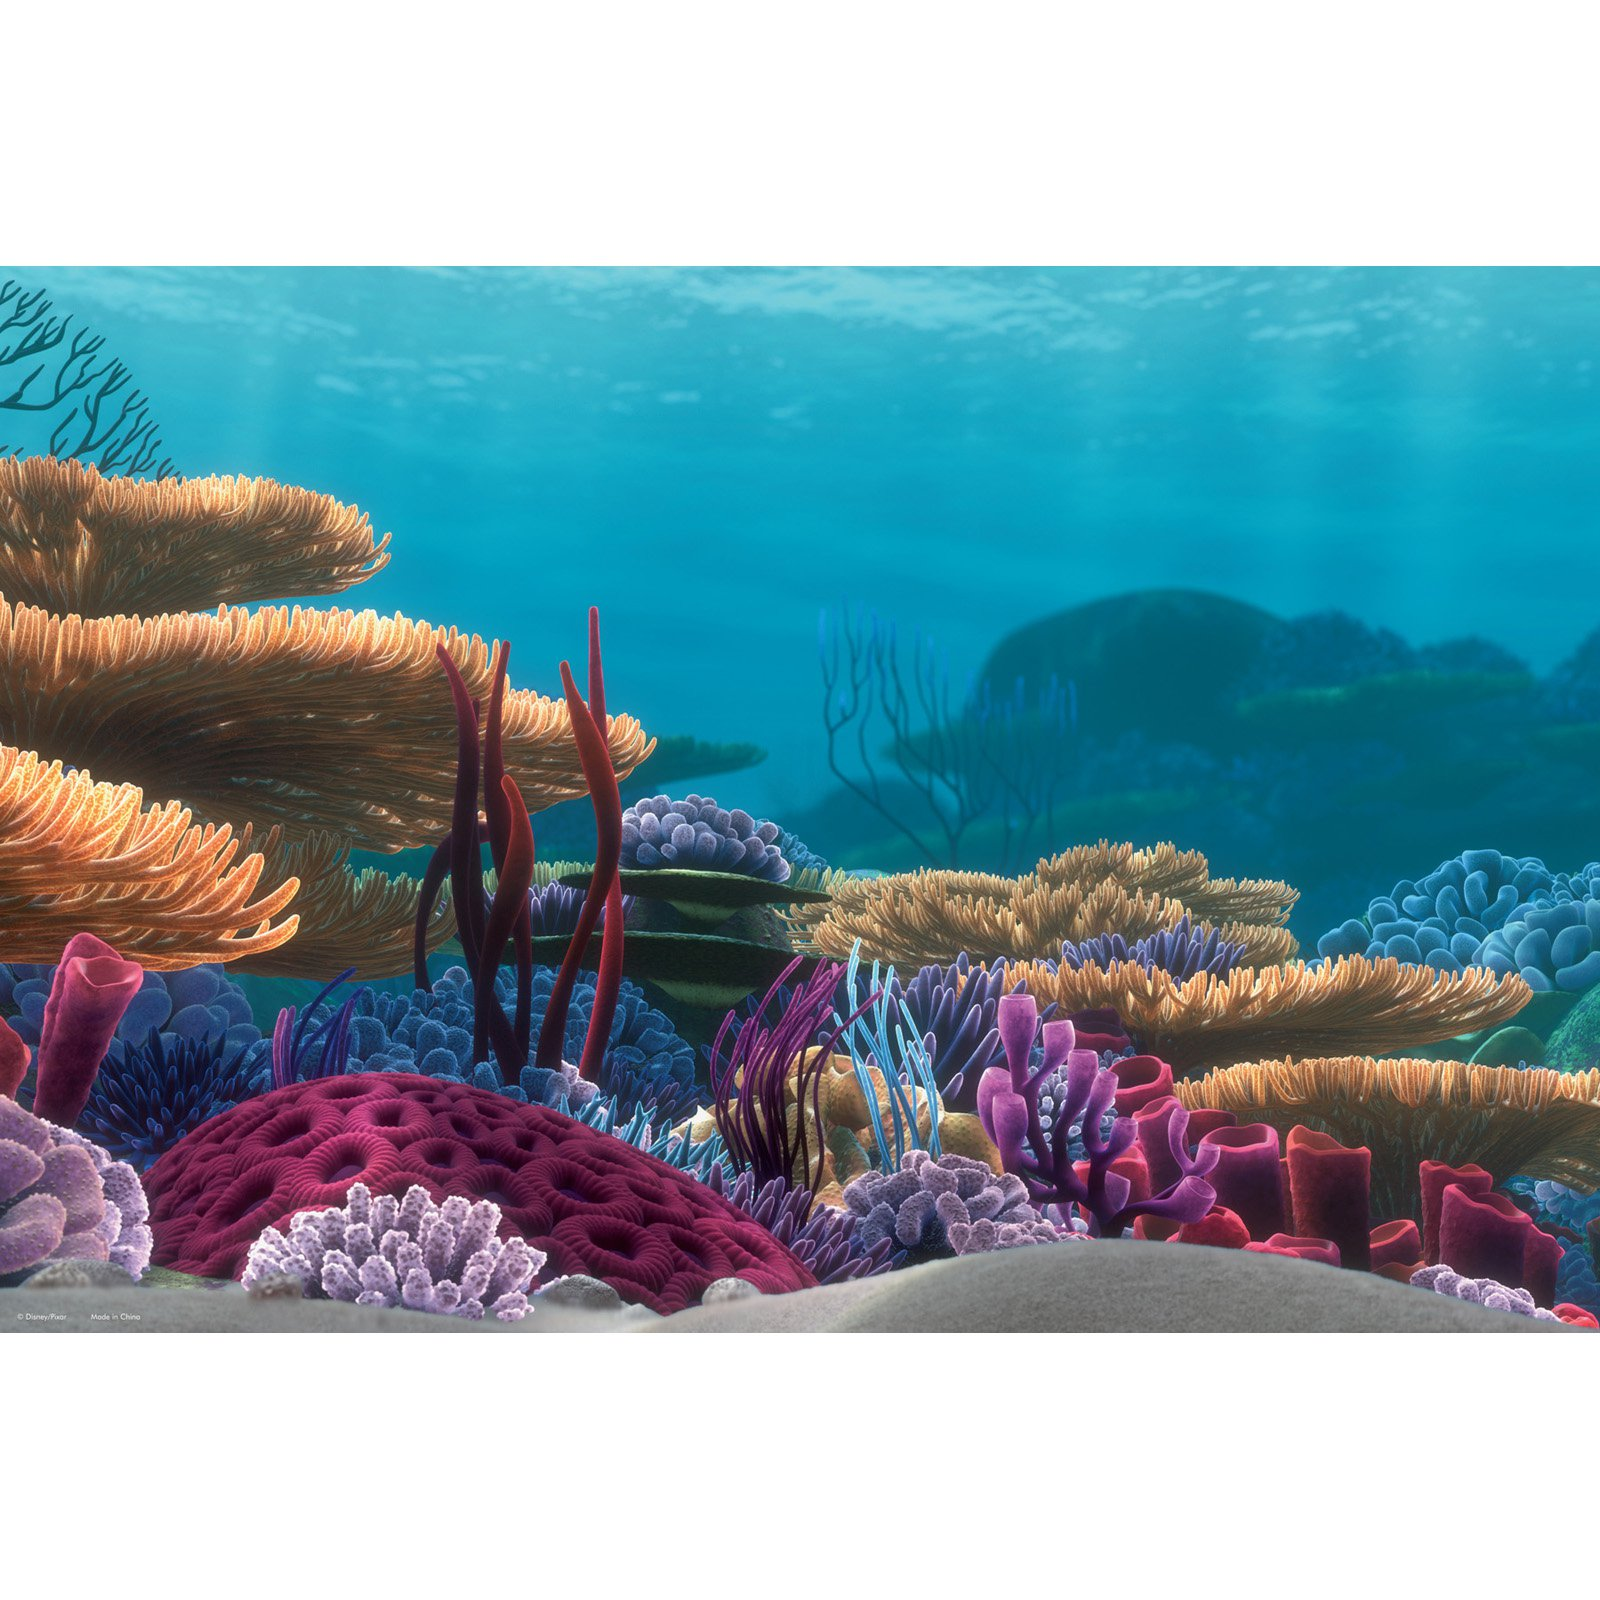 image relating to Fish Tank Background Printable called Penn Plax Getting Nemo 20 gal. Tank Historical past